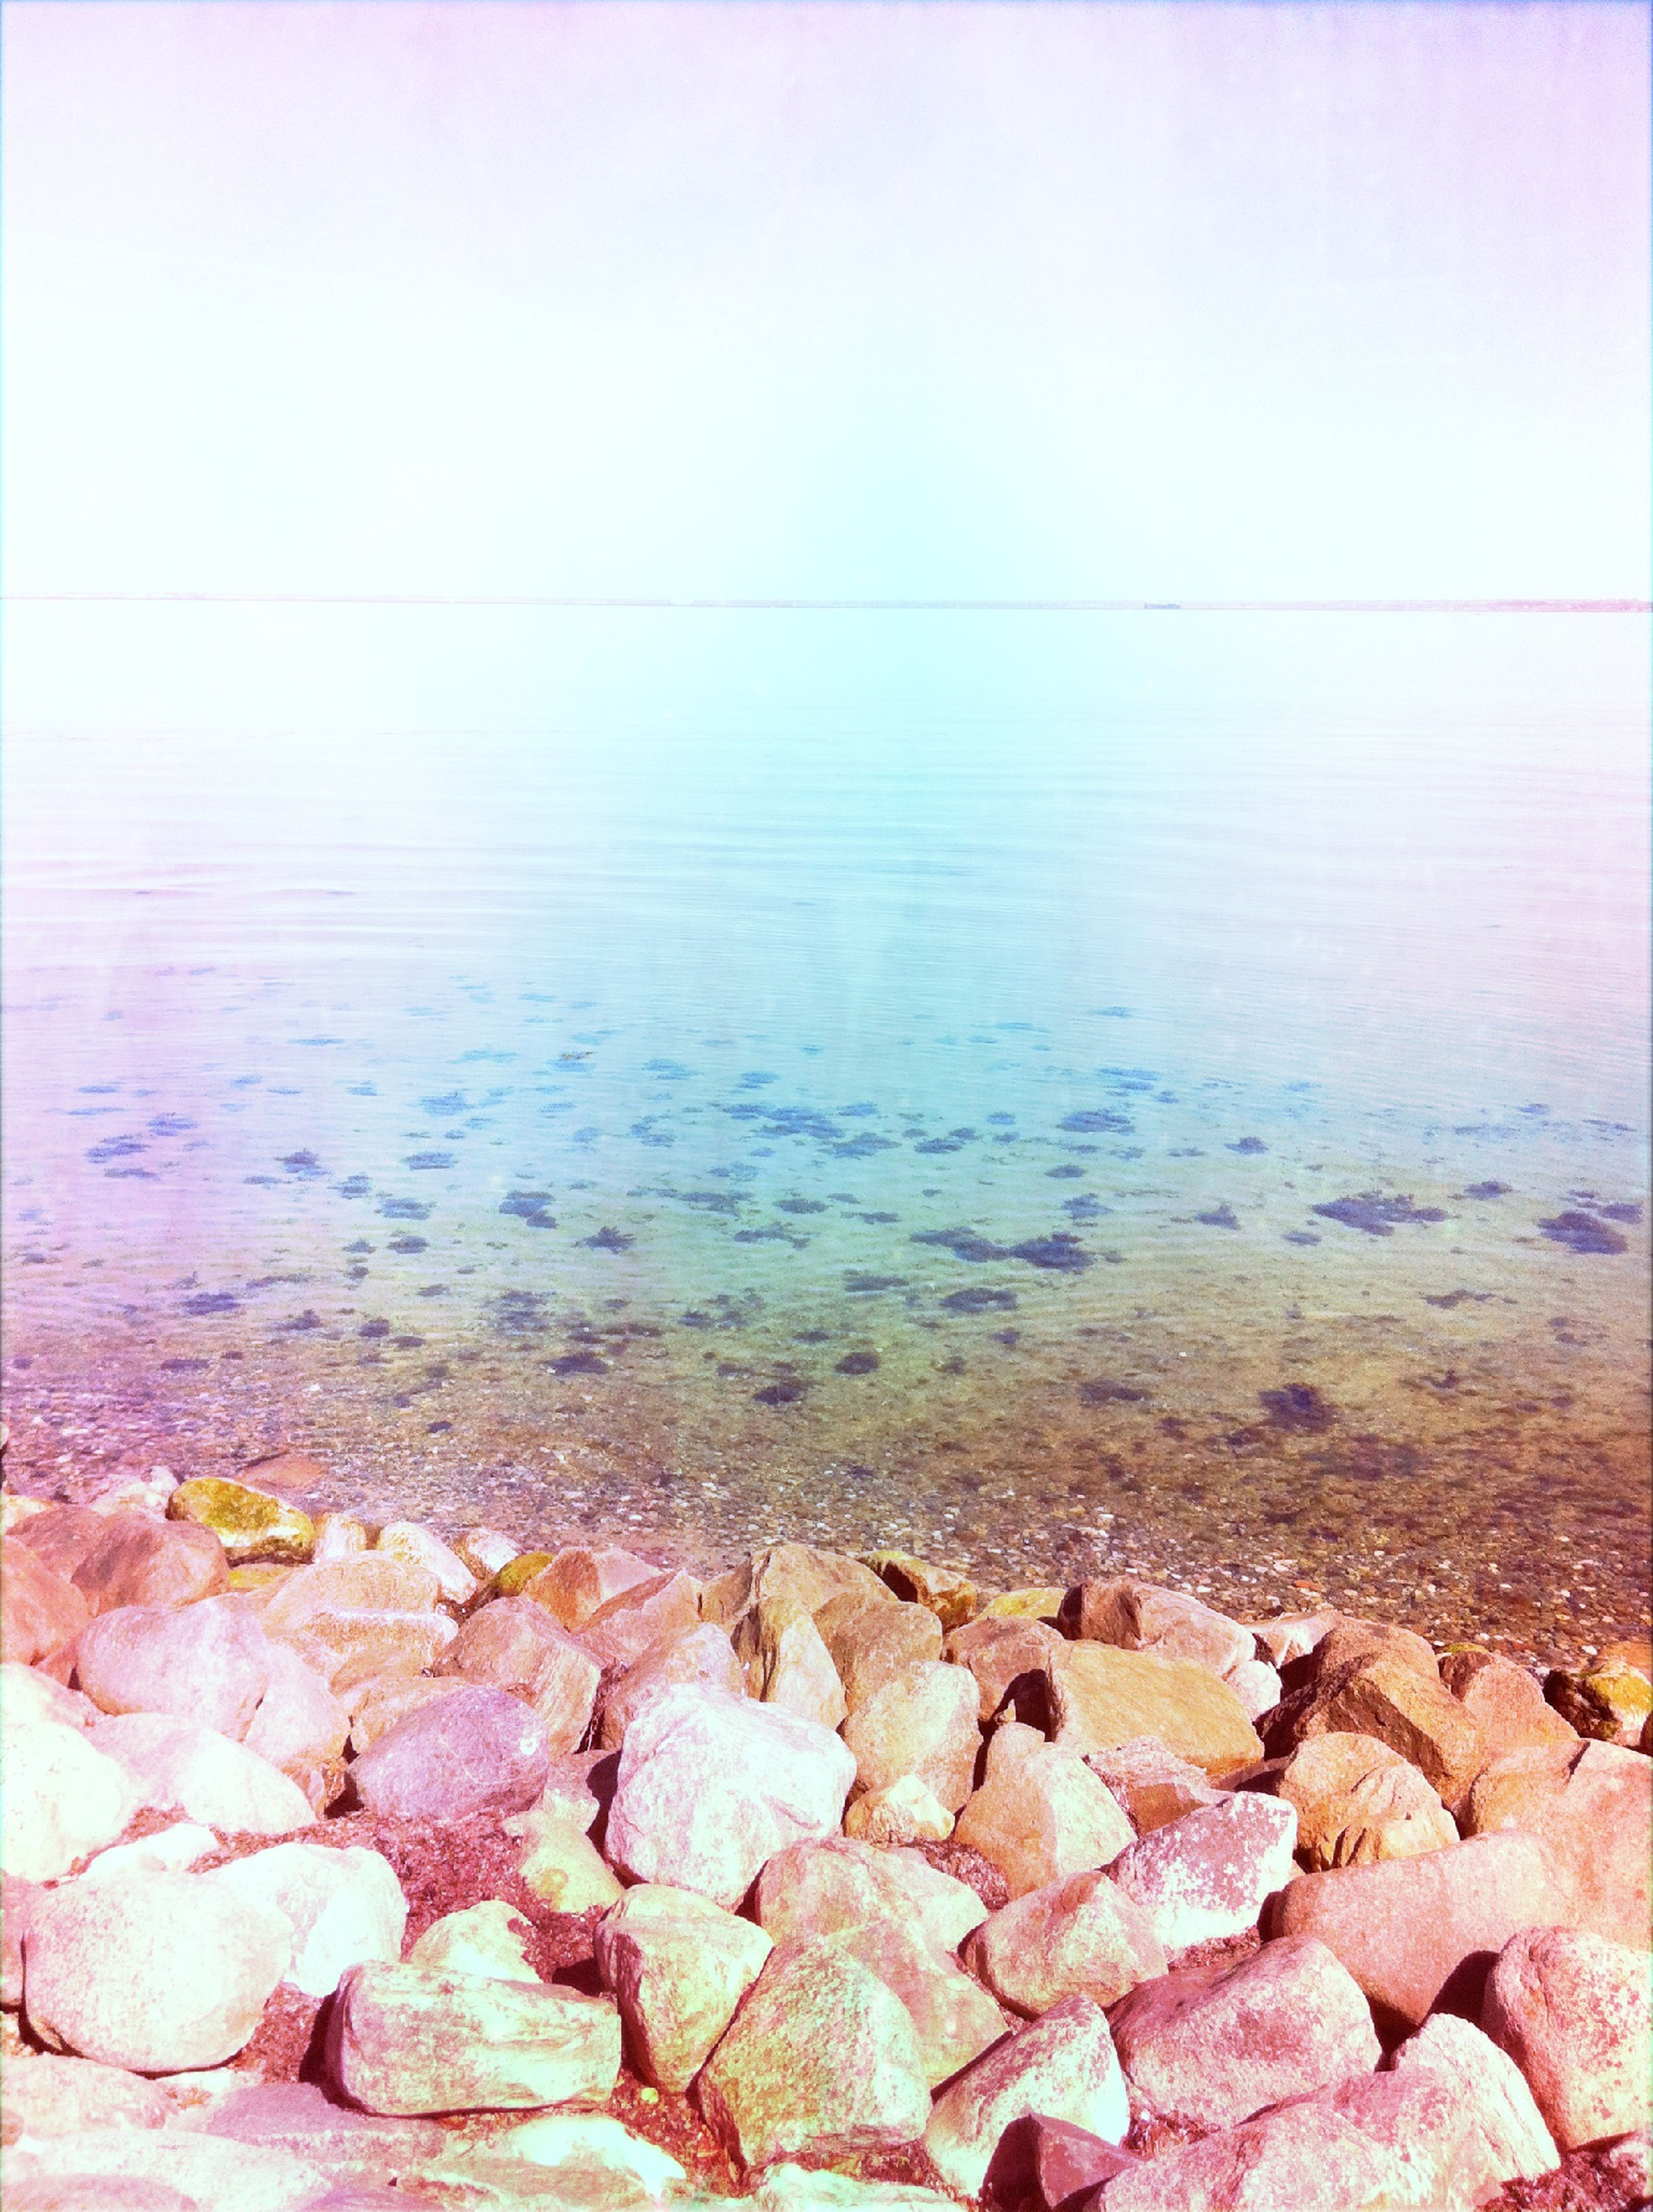 water, stone - object, tranquility, tranquil scene, nature, lake, rock - object, rippled, scenics, day, beauty in nature, outdoors, reflection, sea, stone, pebble, no people, sky, clear sky, copy space